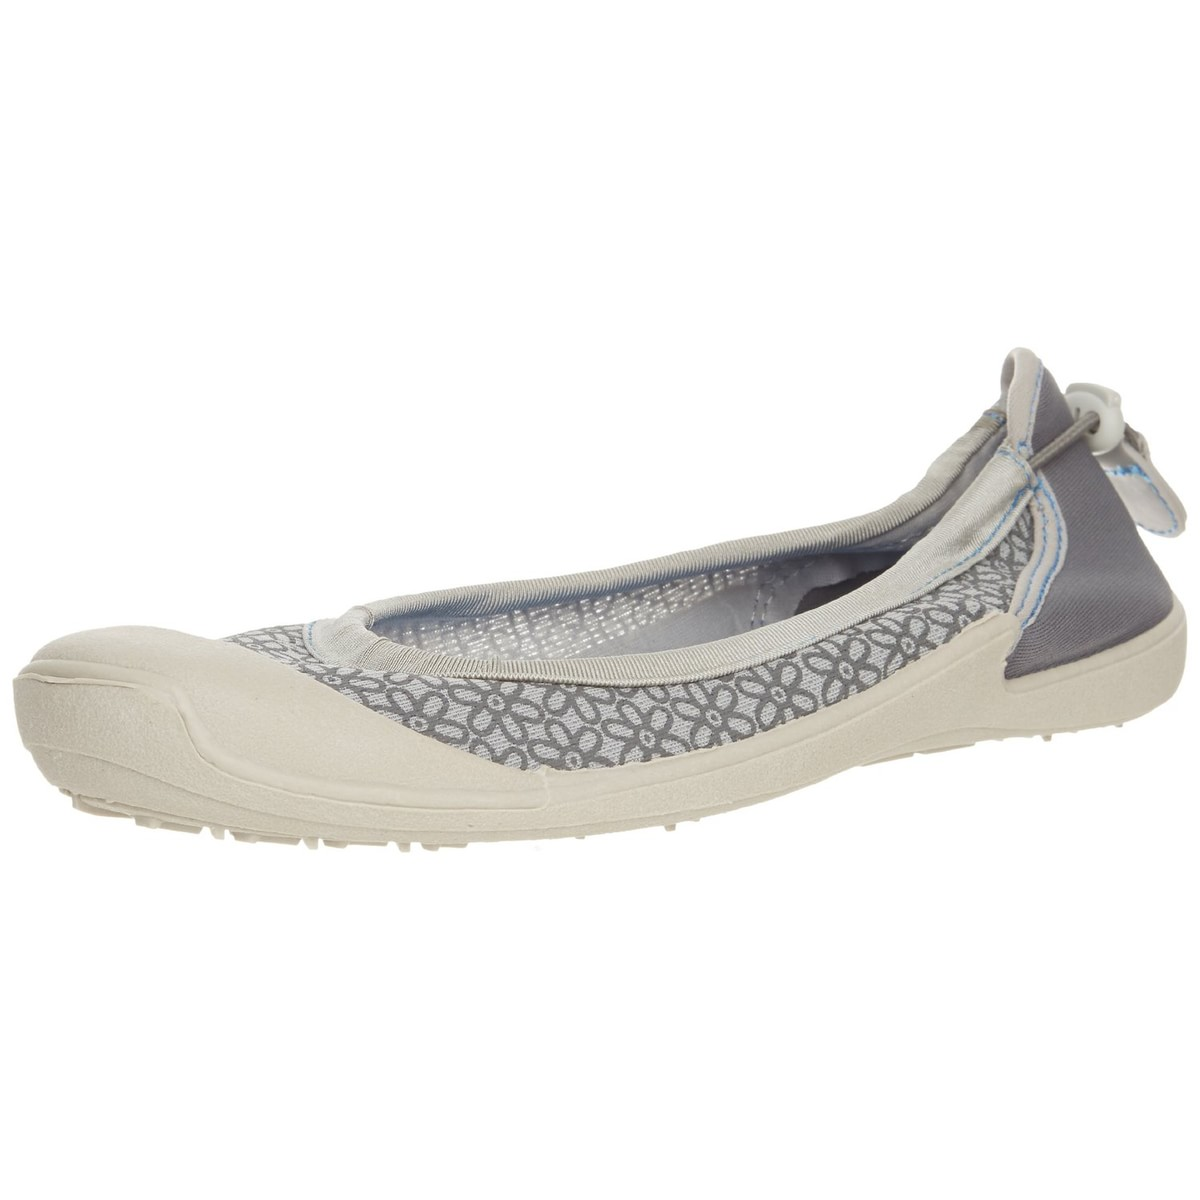 Cudas Catalina Women's Water Shoes by Cudas